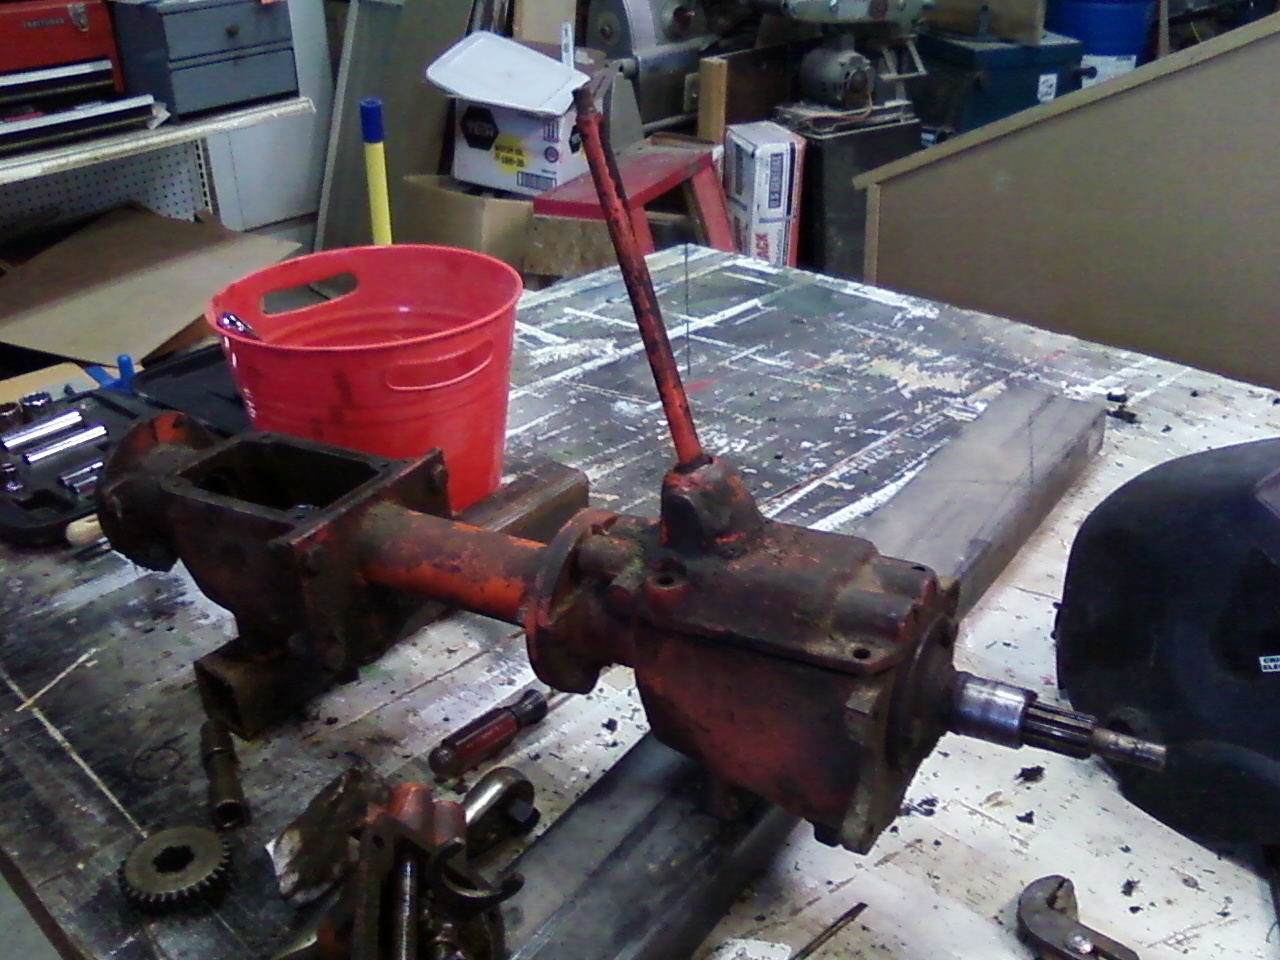 Groovy Power King Economy Tractor Restoration Fixing Jammed Transmission Wiring Cloud Waroletkolfr09Org